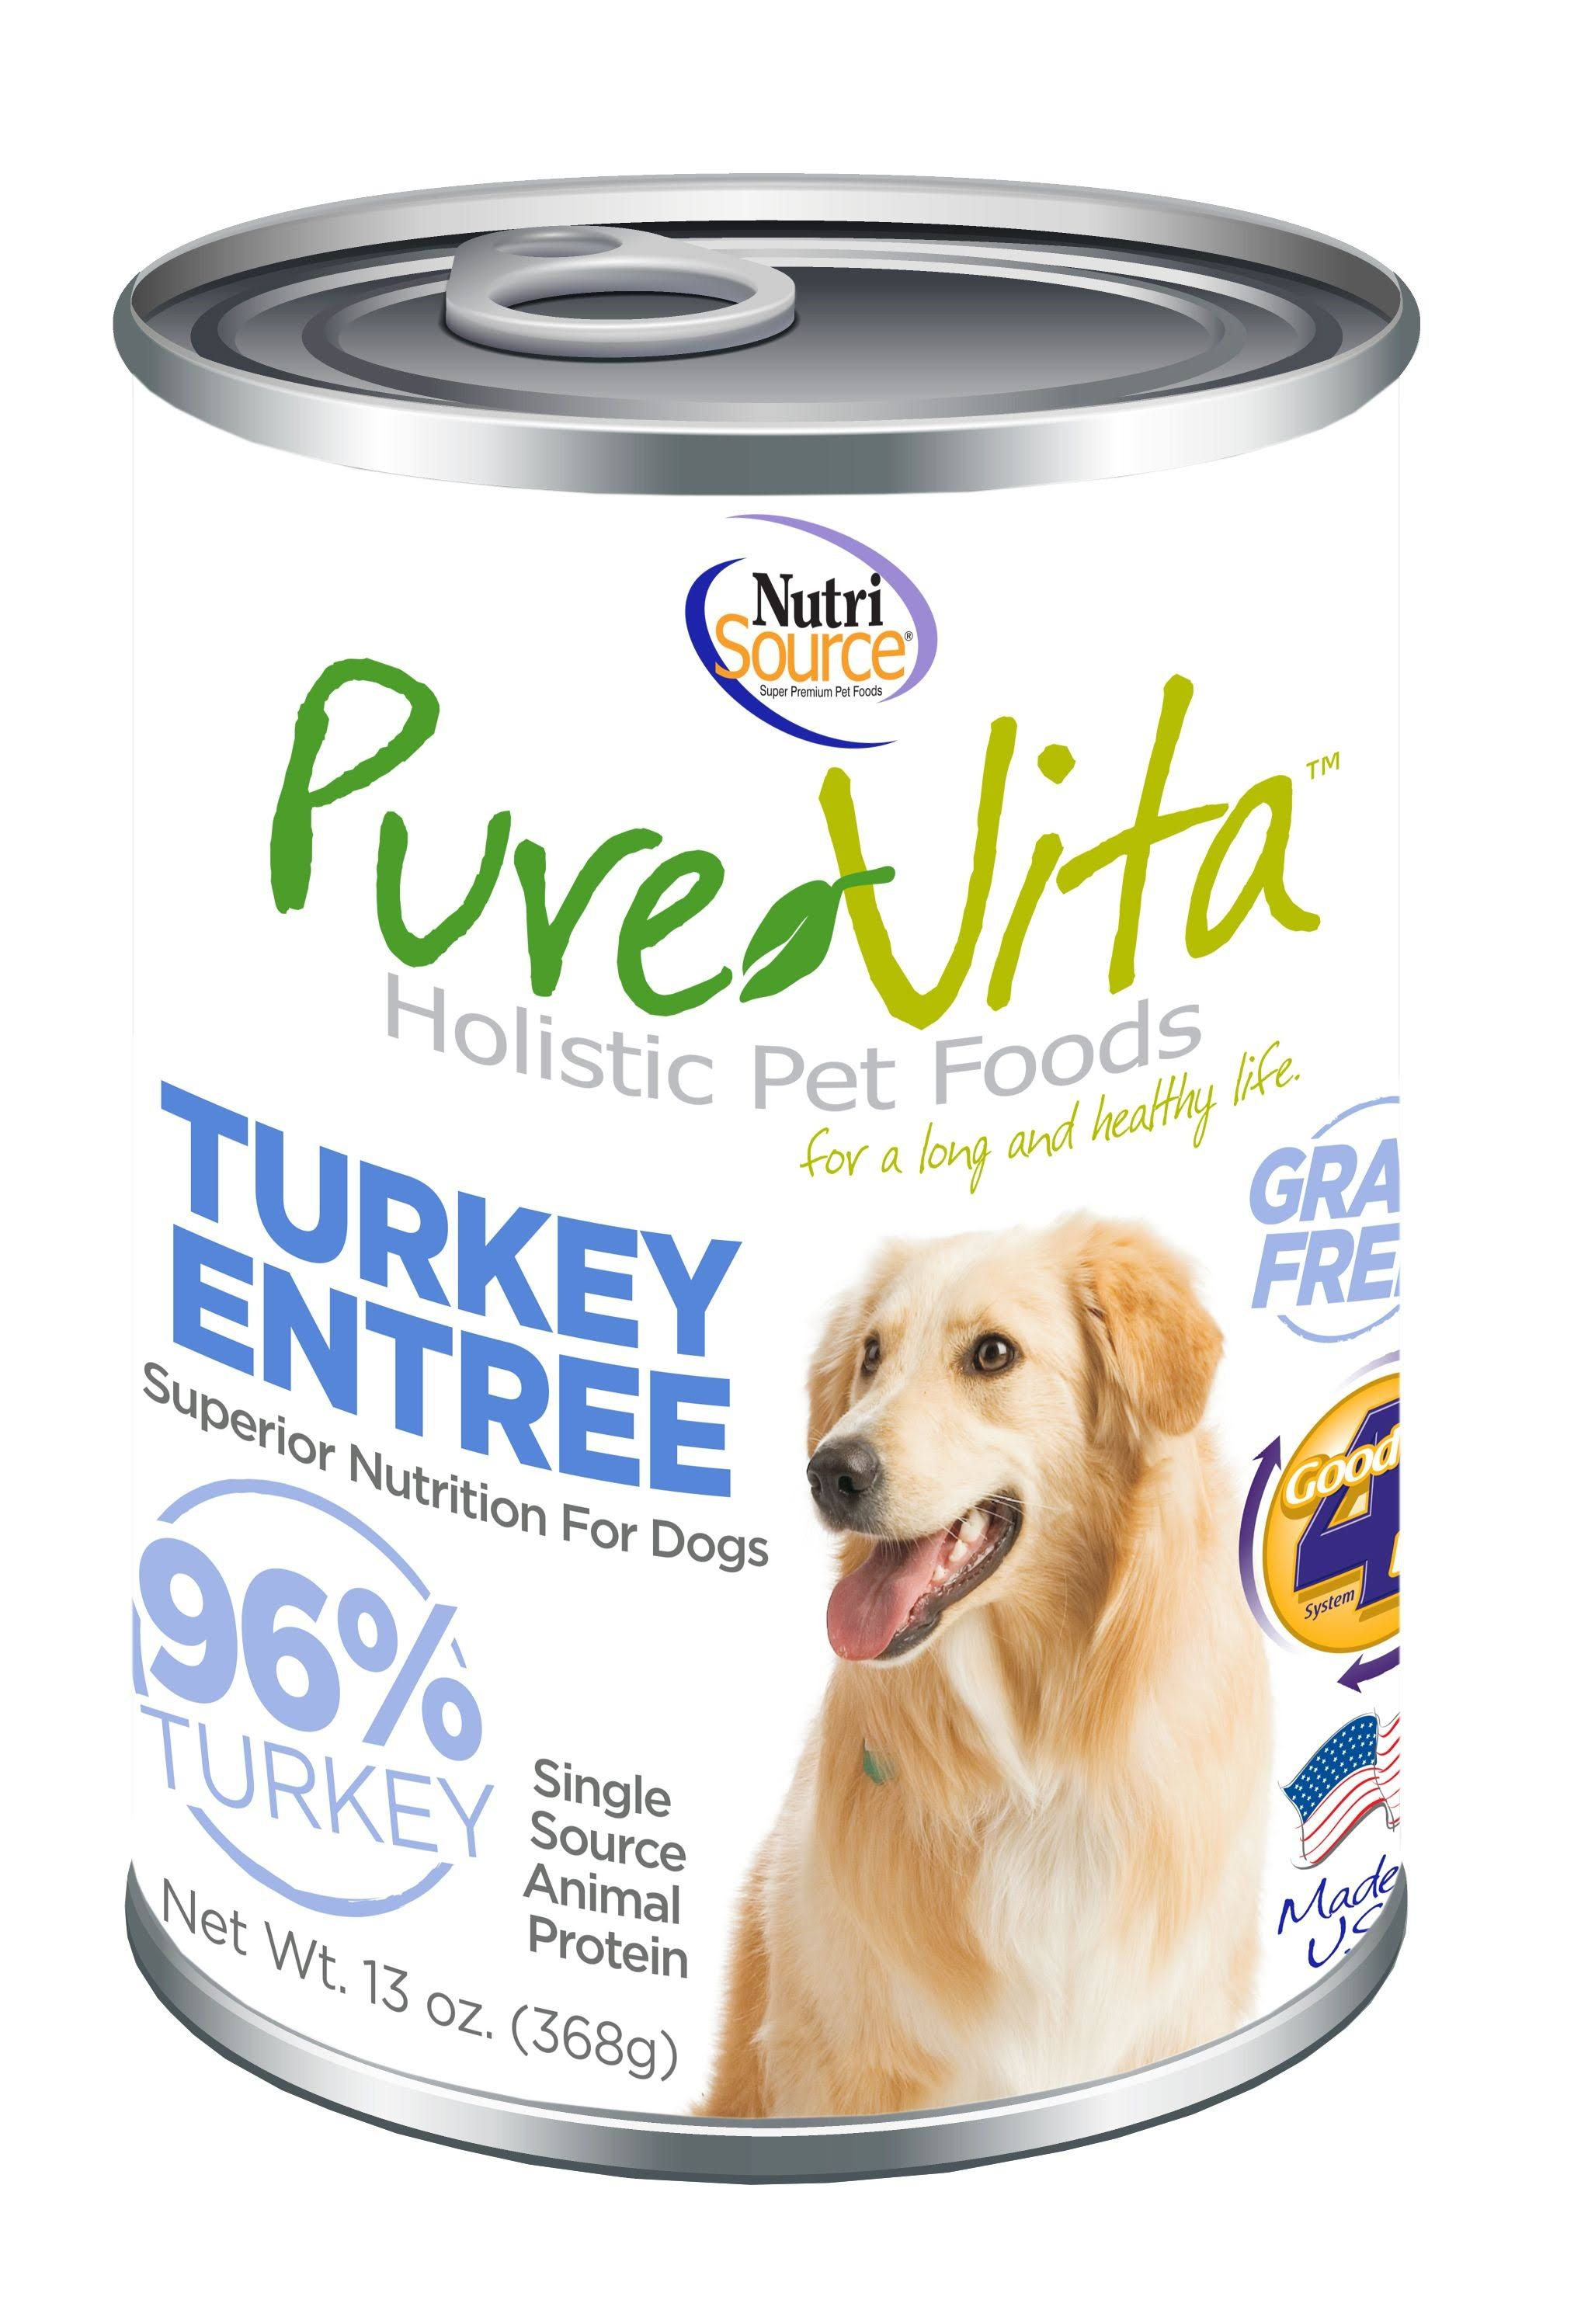 PureVita Turkey Entree 96% Turkey Grain-Free Wet Canned Dog Food, 13oz